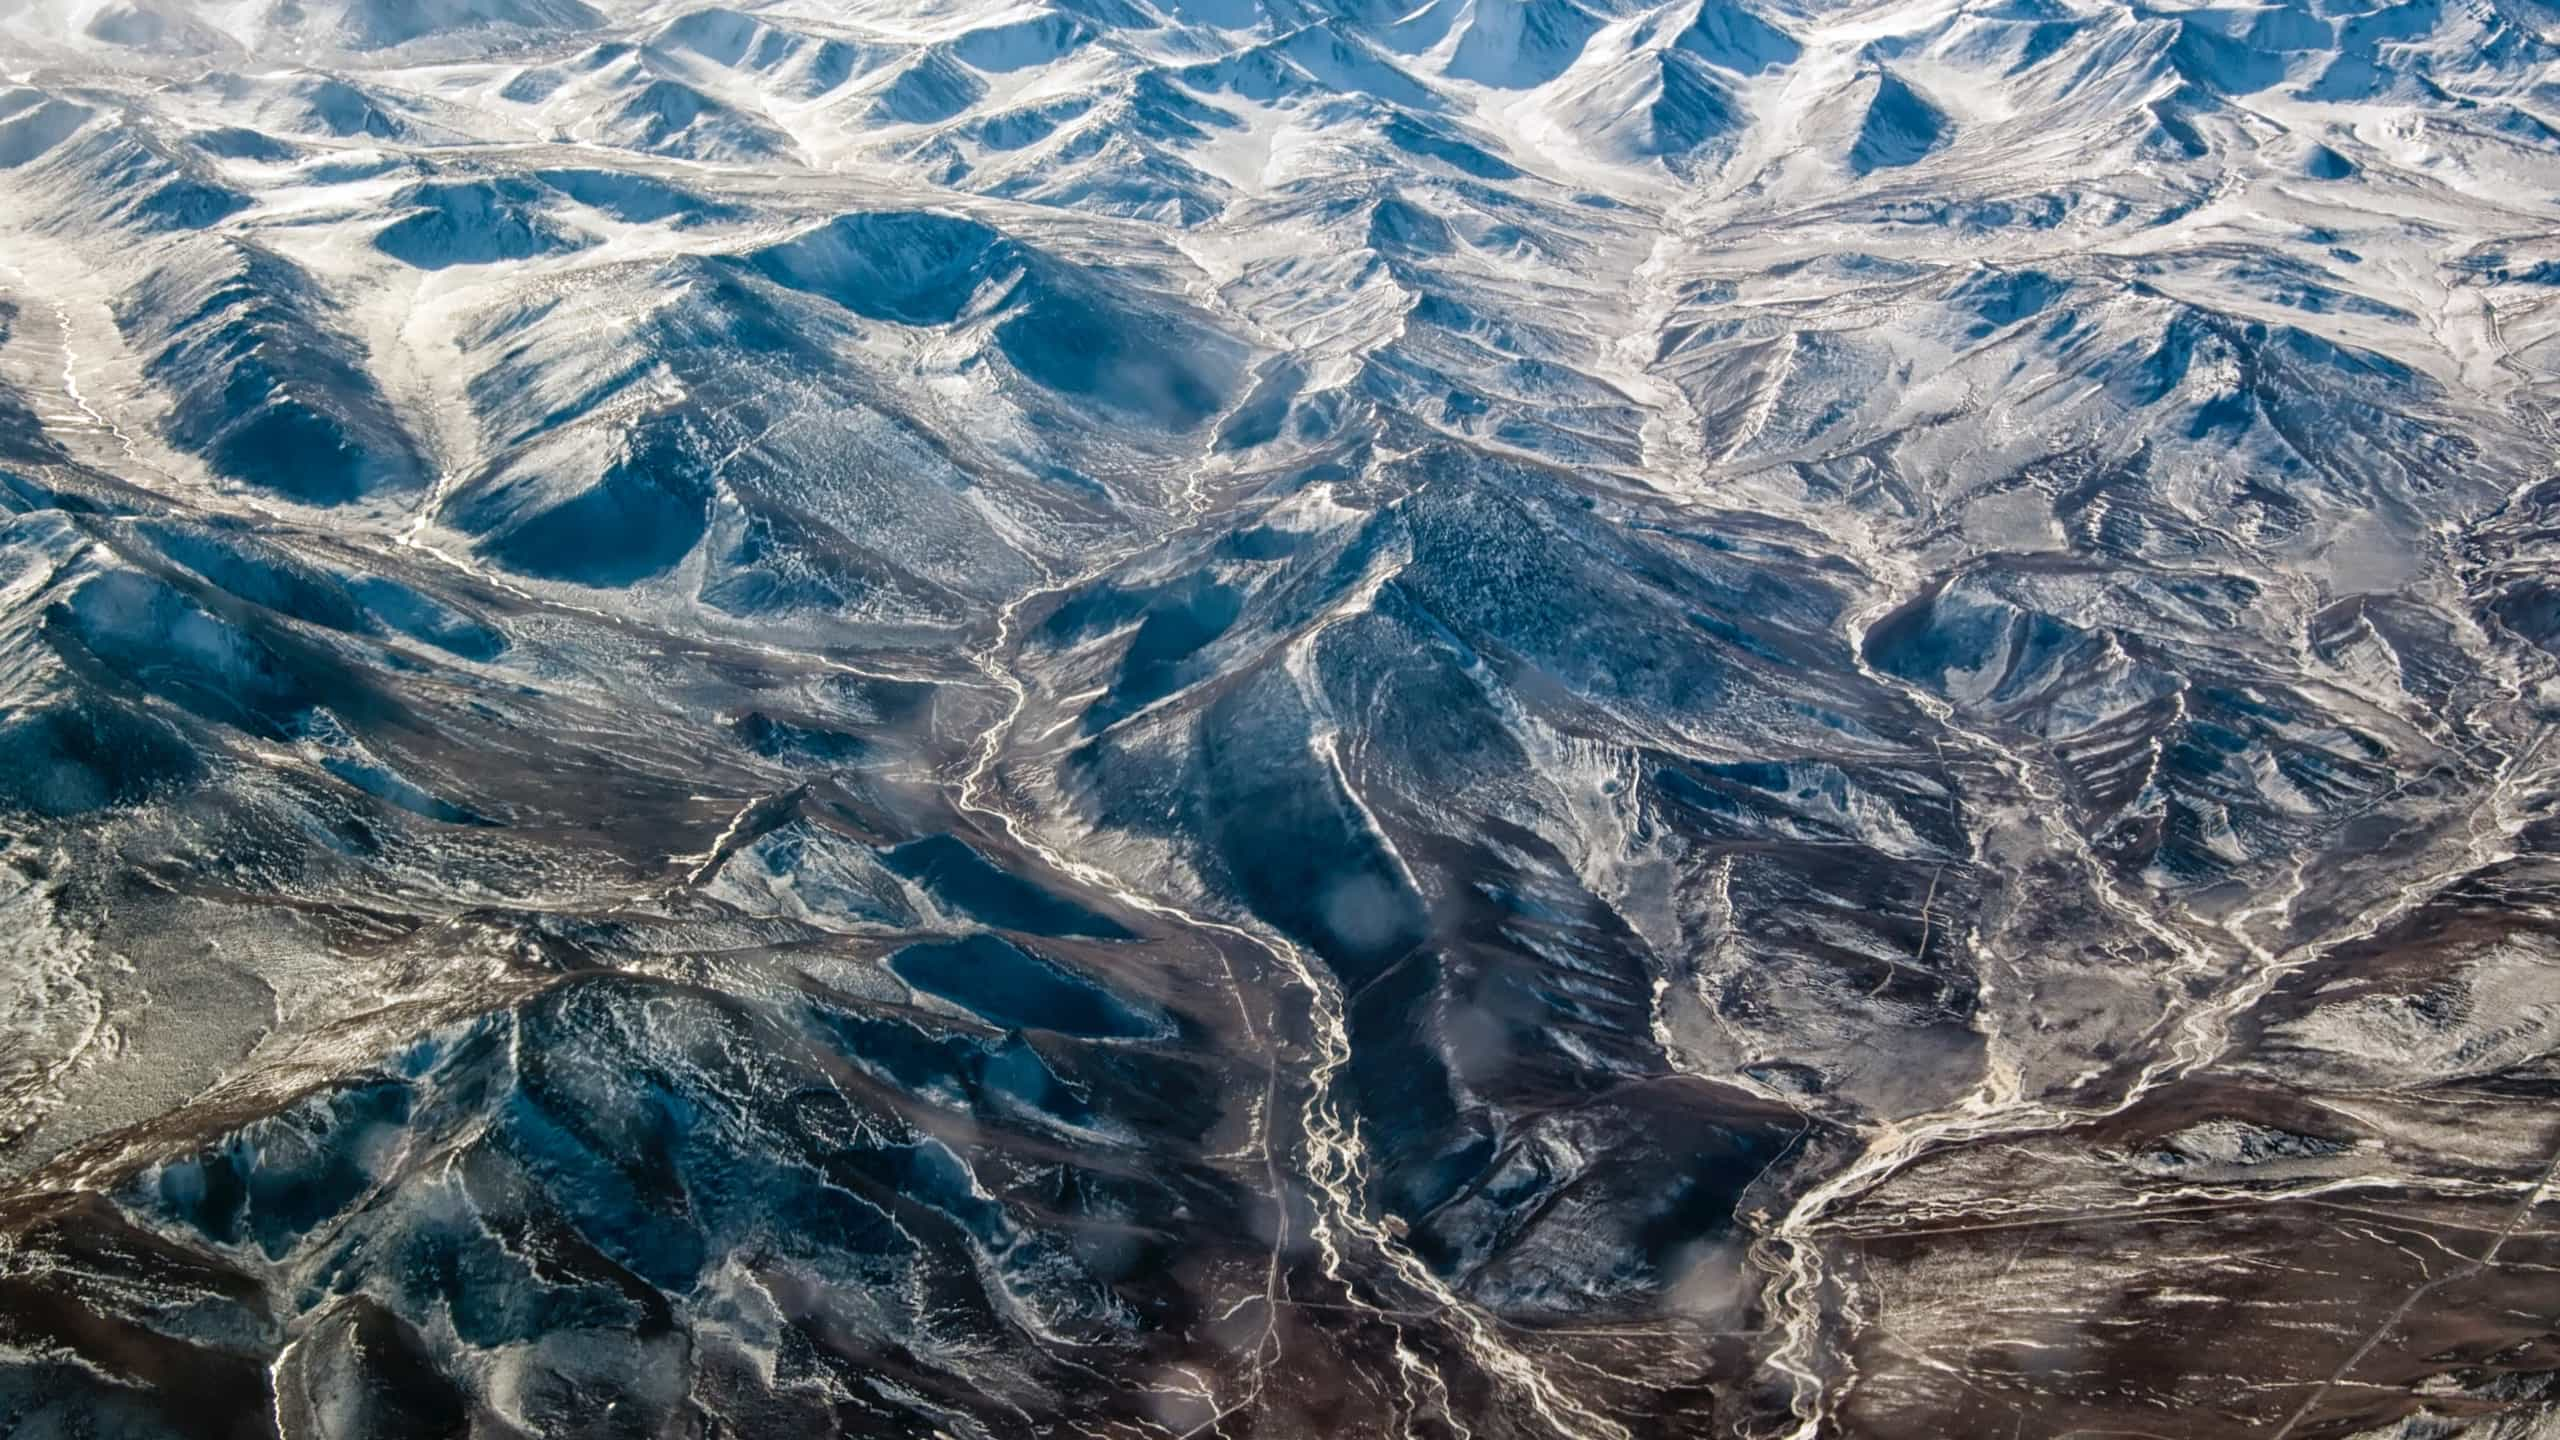 Aerial view of rivers in a mountainous region